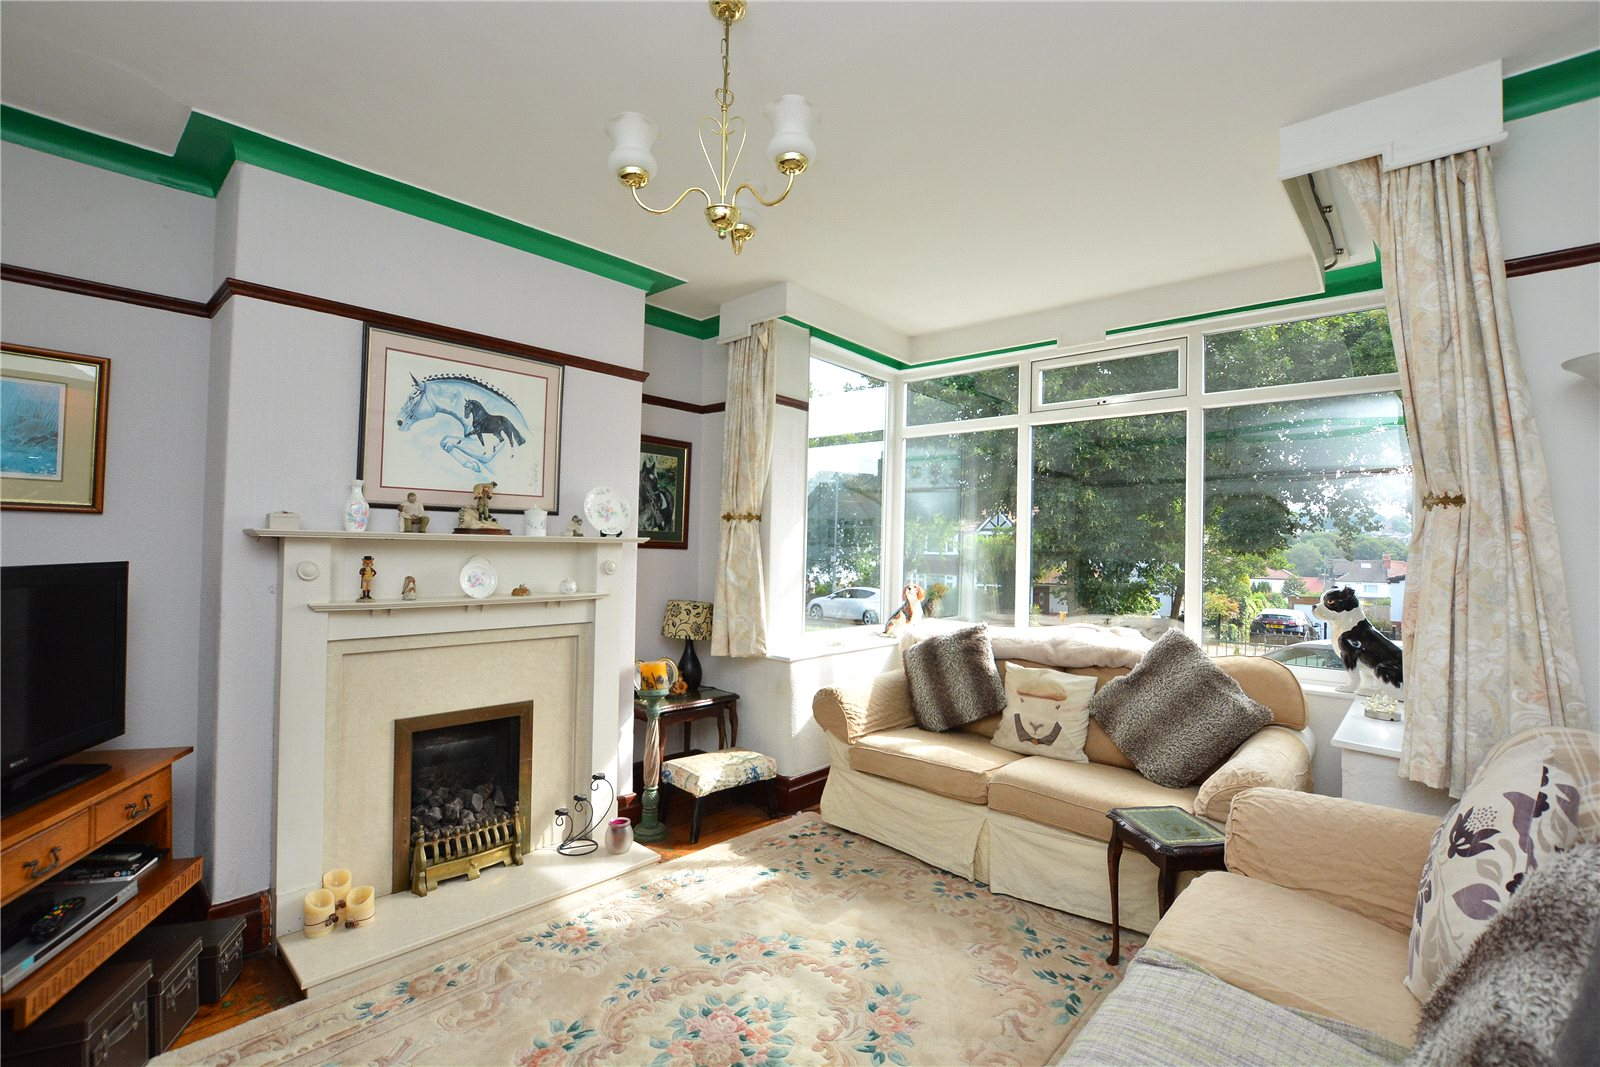 Property for sale in Horsforth, living room, spacious